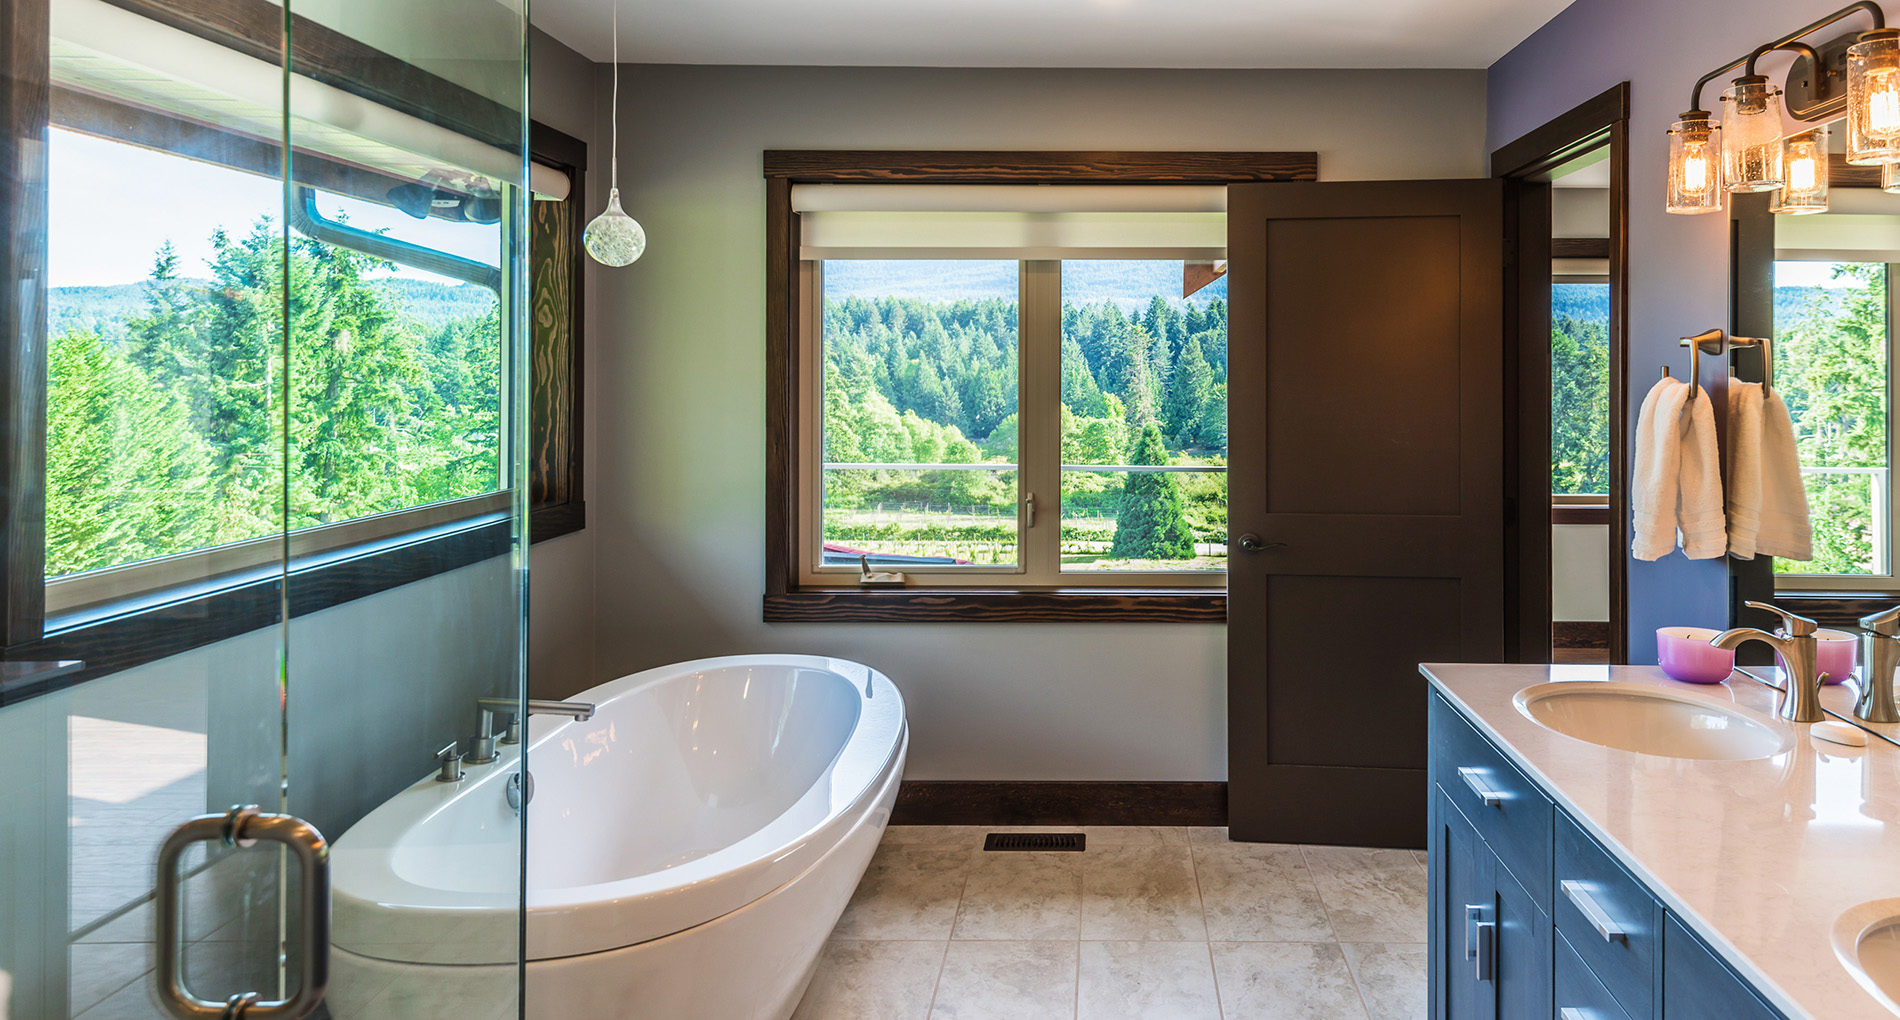 Bathroom Renovations & Design in Victoria | Alair Homes ...